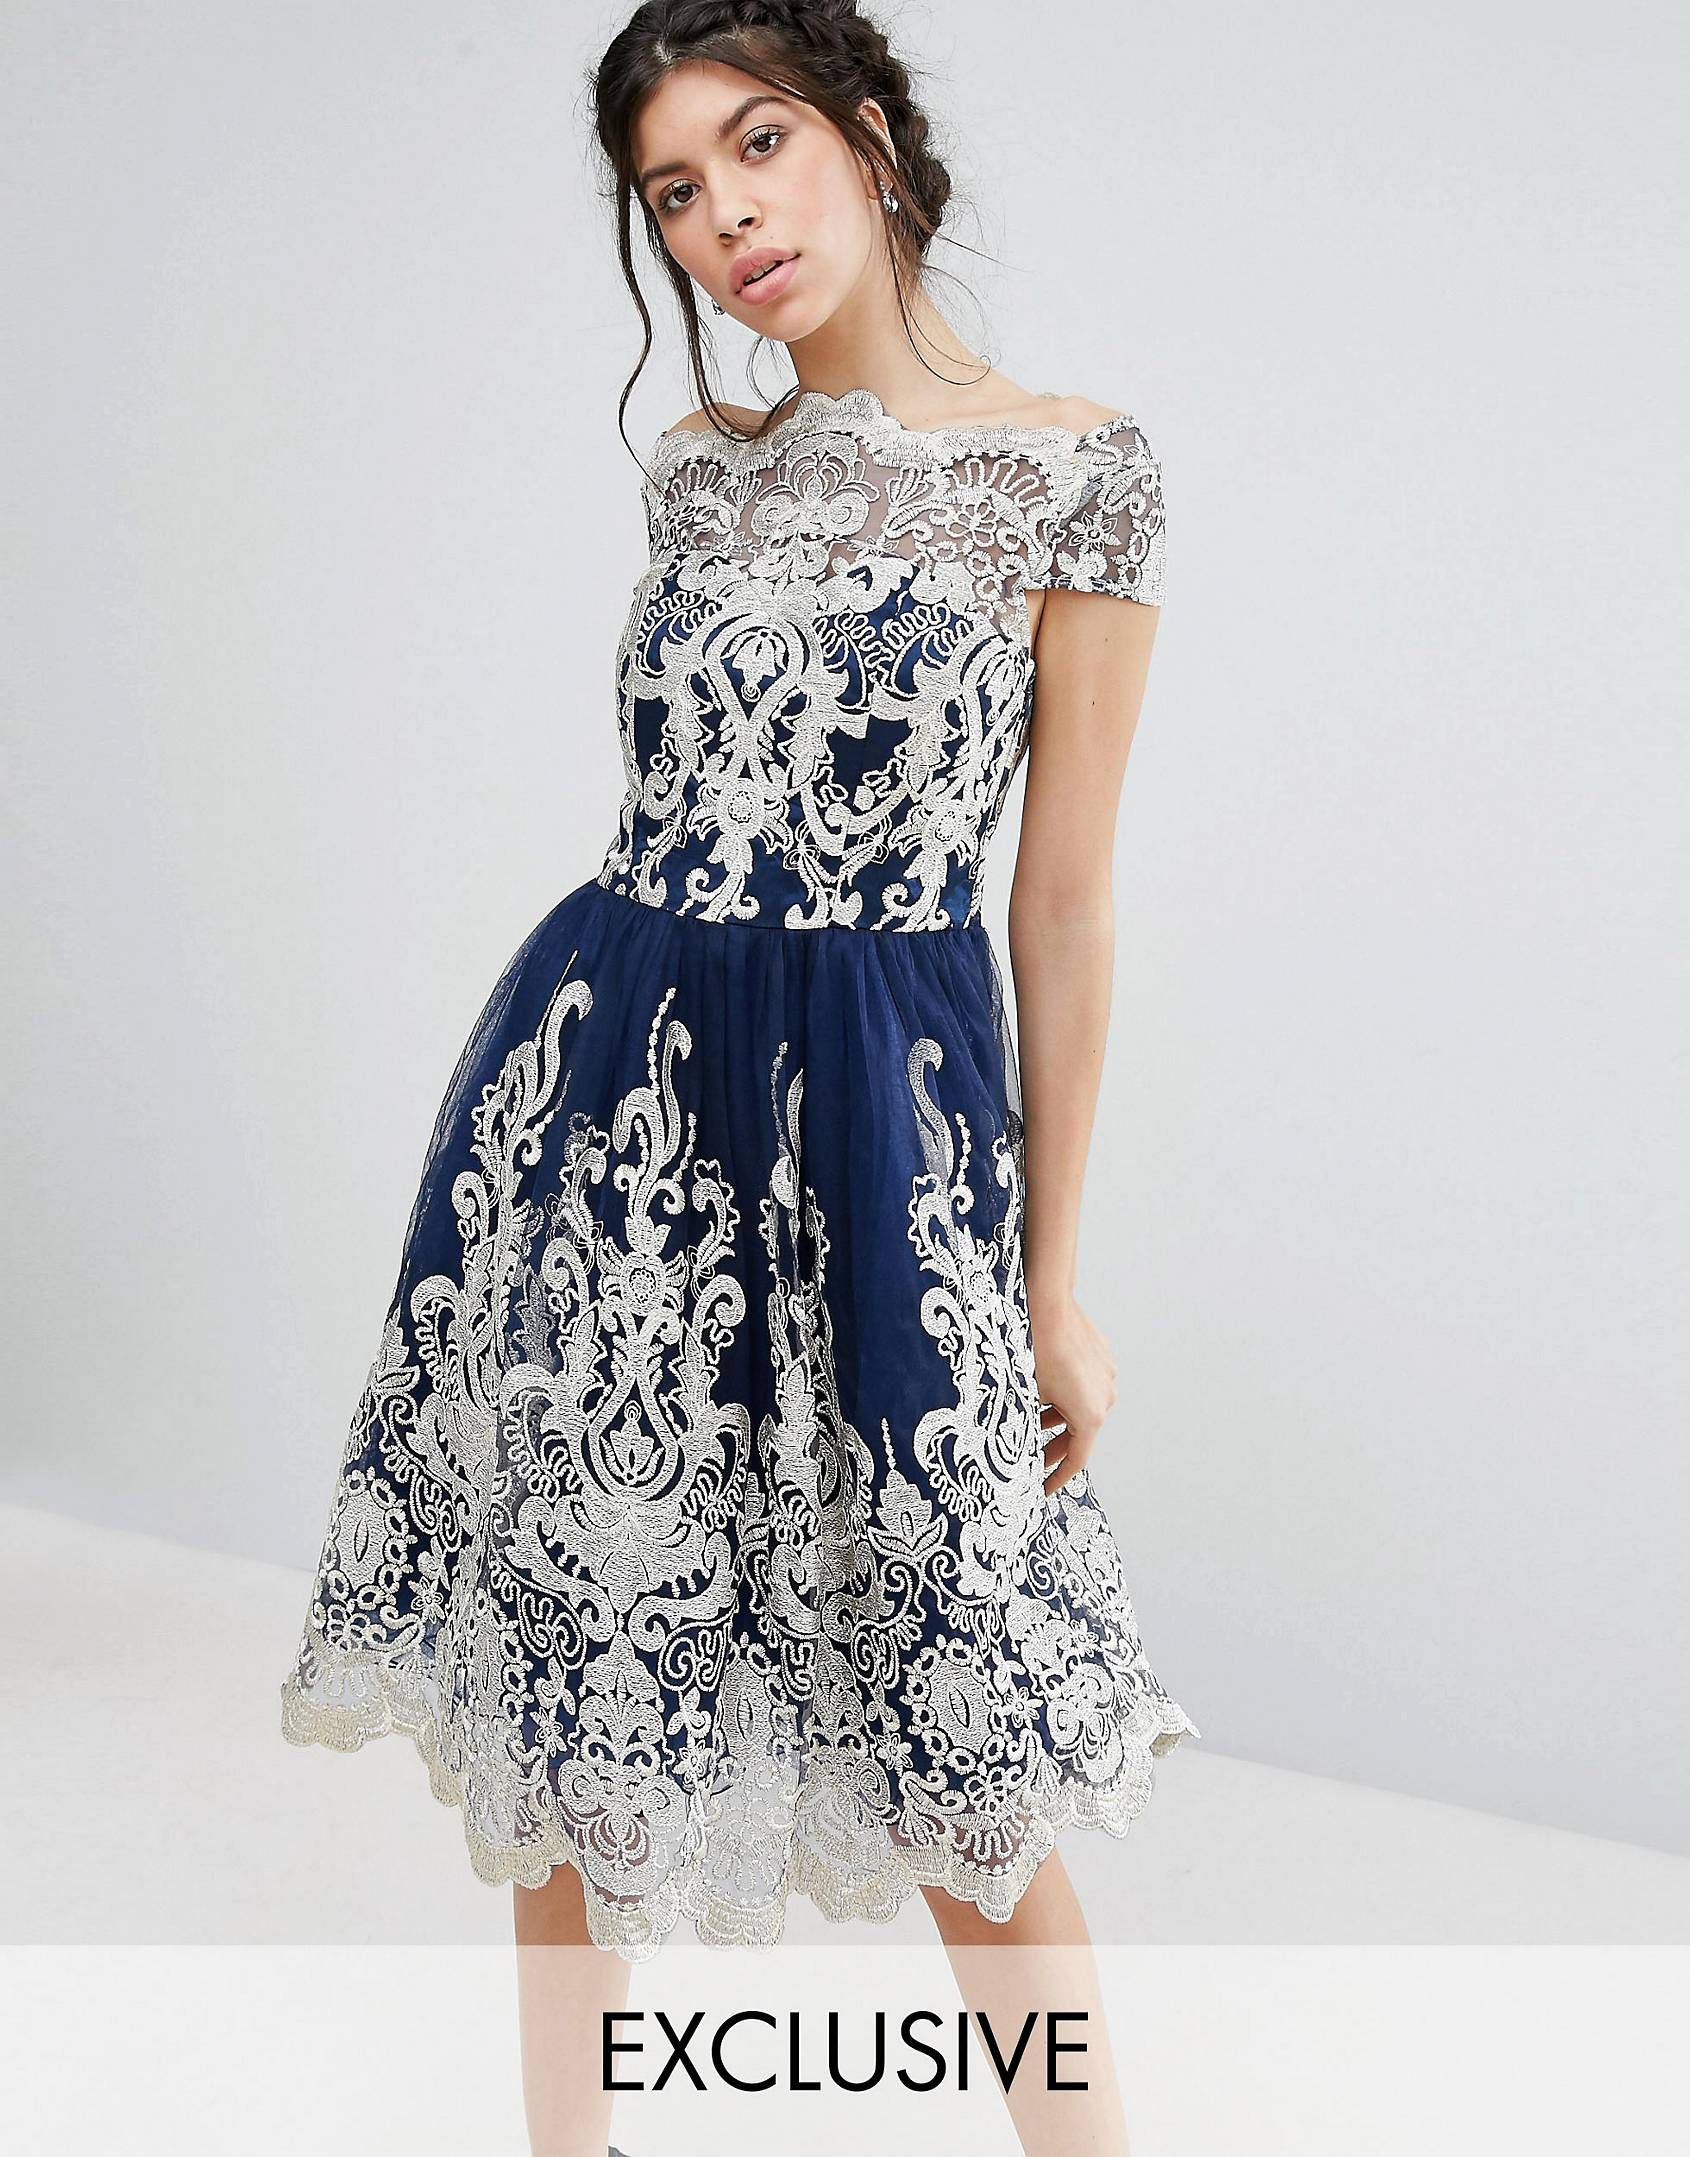 Love this from asos fabulous fashion for less pinterest fashion